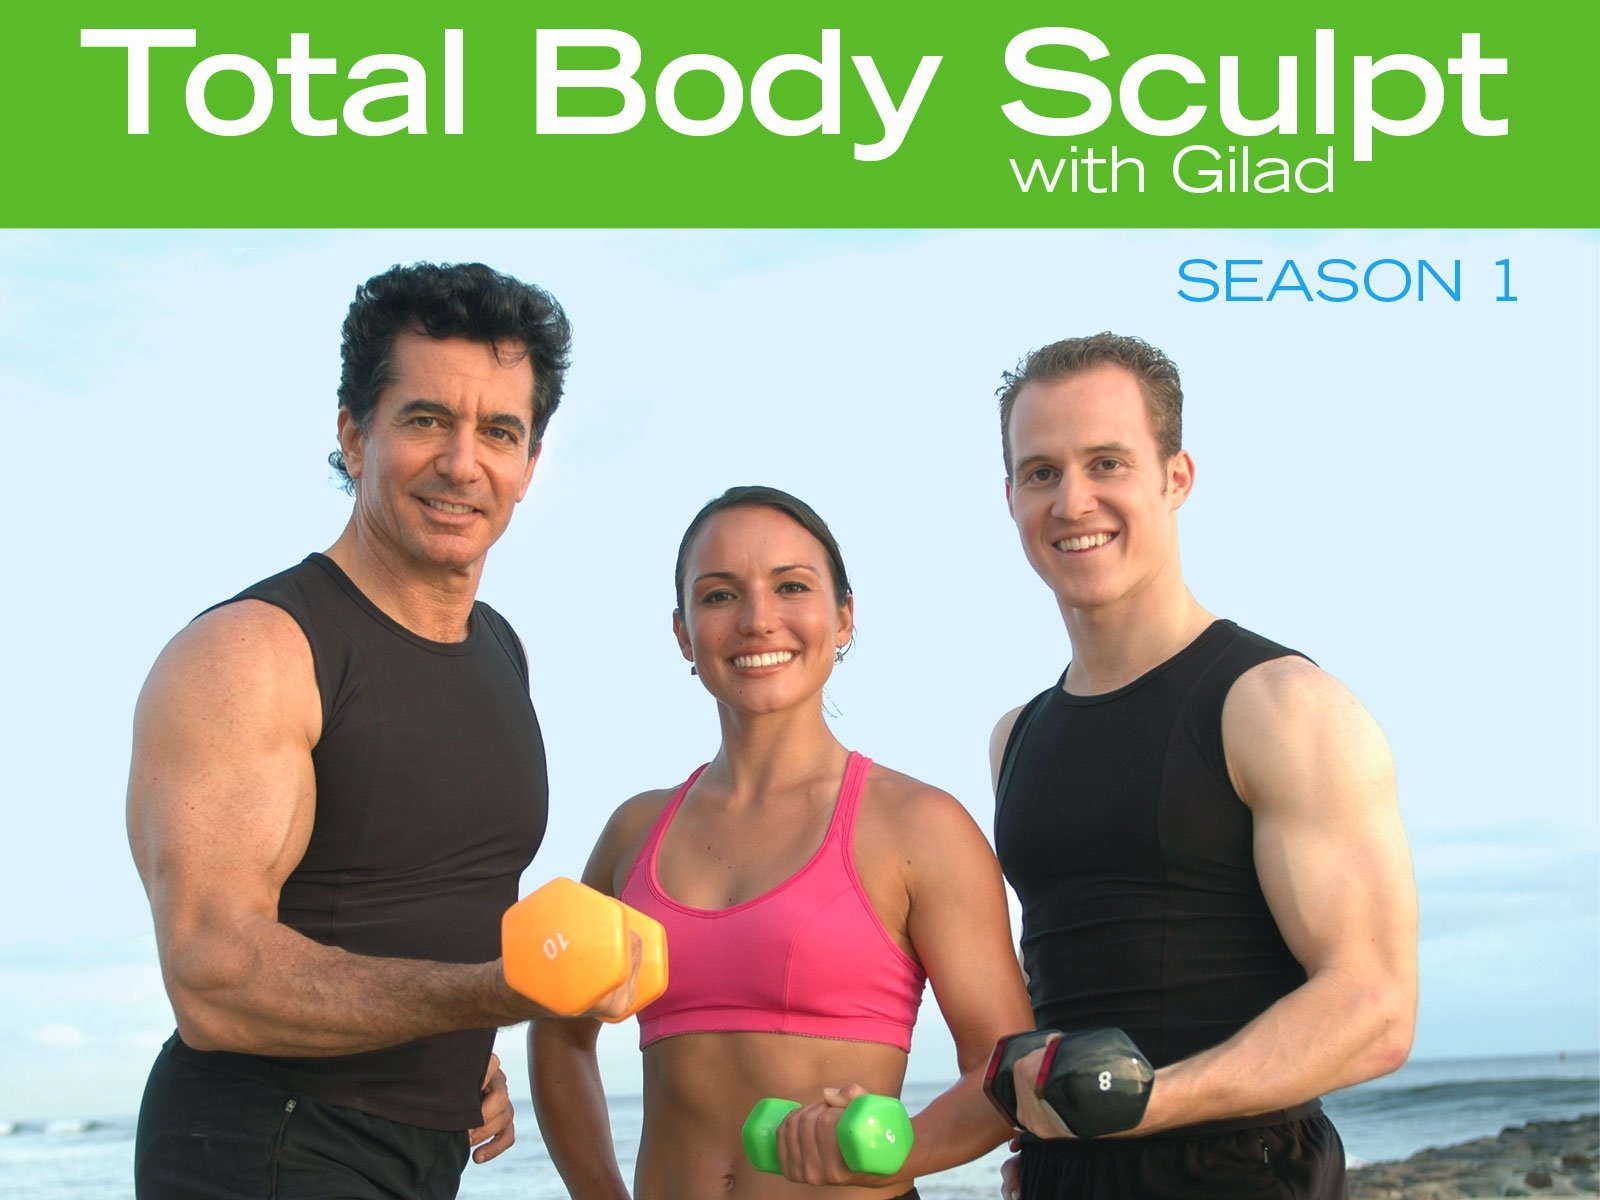 Total Body Sculpt With Gilad Season 1 Amazon Digital Super Circuit Workout Kayla In The City Services Llc